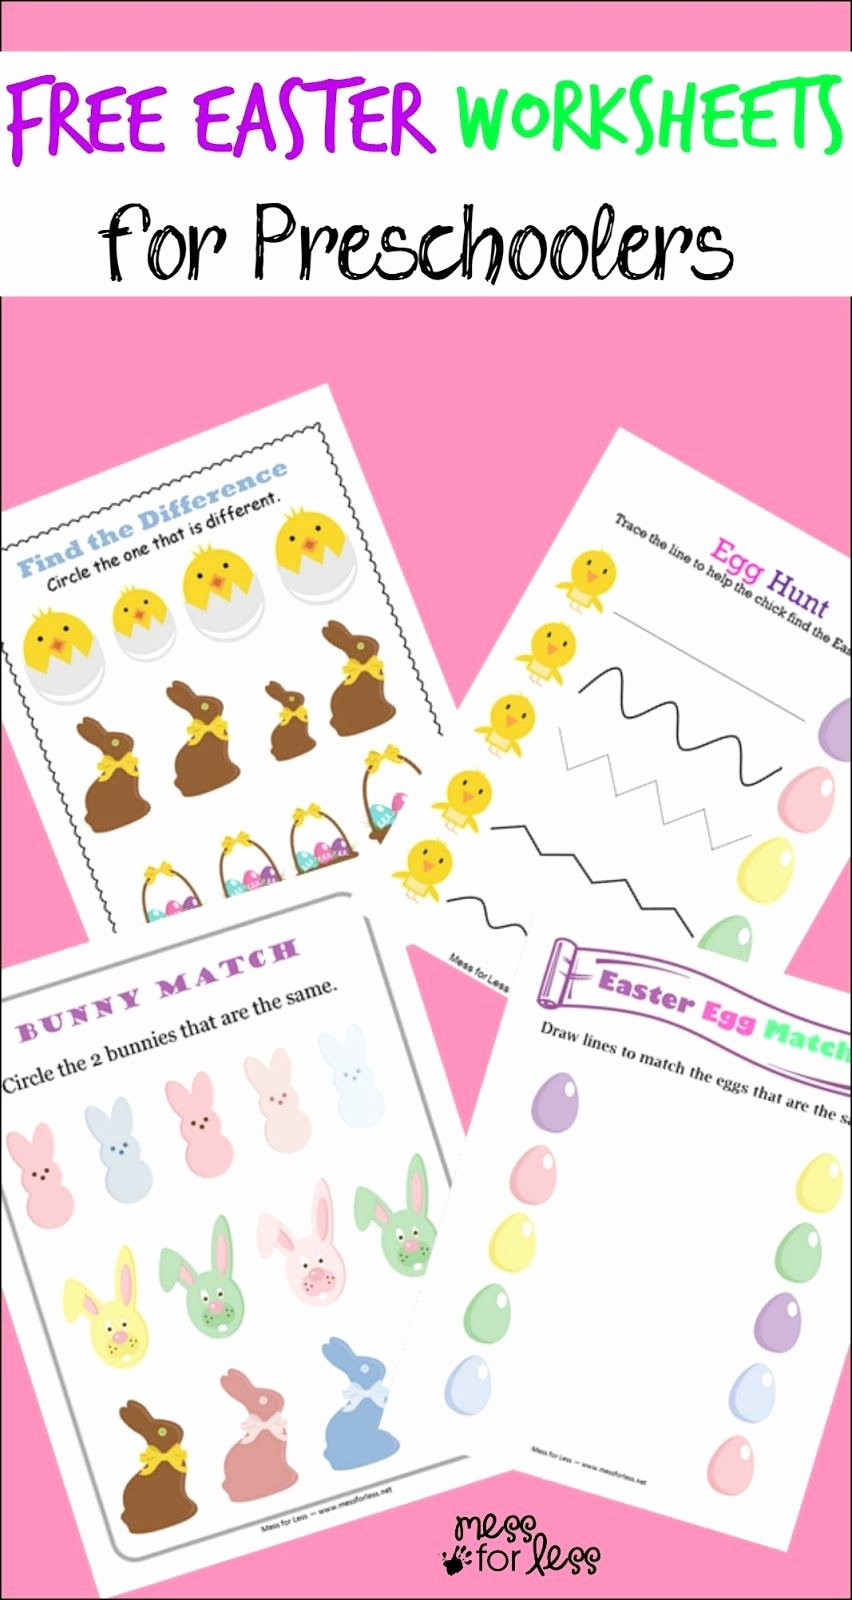 Free Easter Printable Worksheets for Preschoolers Printable Free Easter Preschool Worksheets